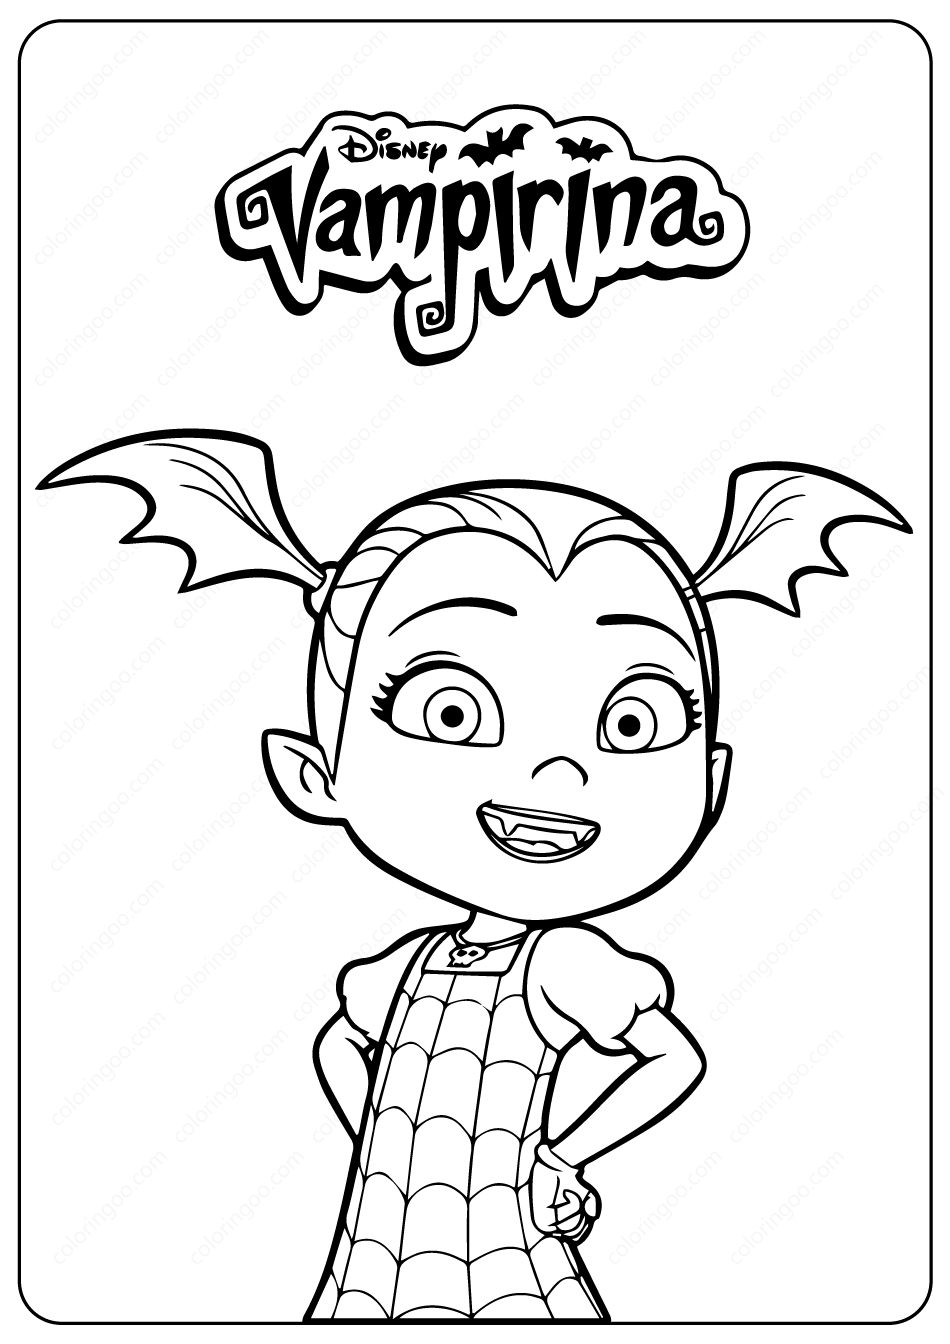 Vampirina PDF Coloring Pages in 2020 | Coloring pages ...